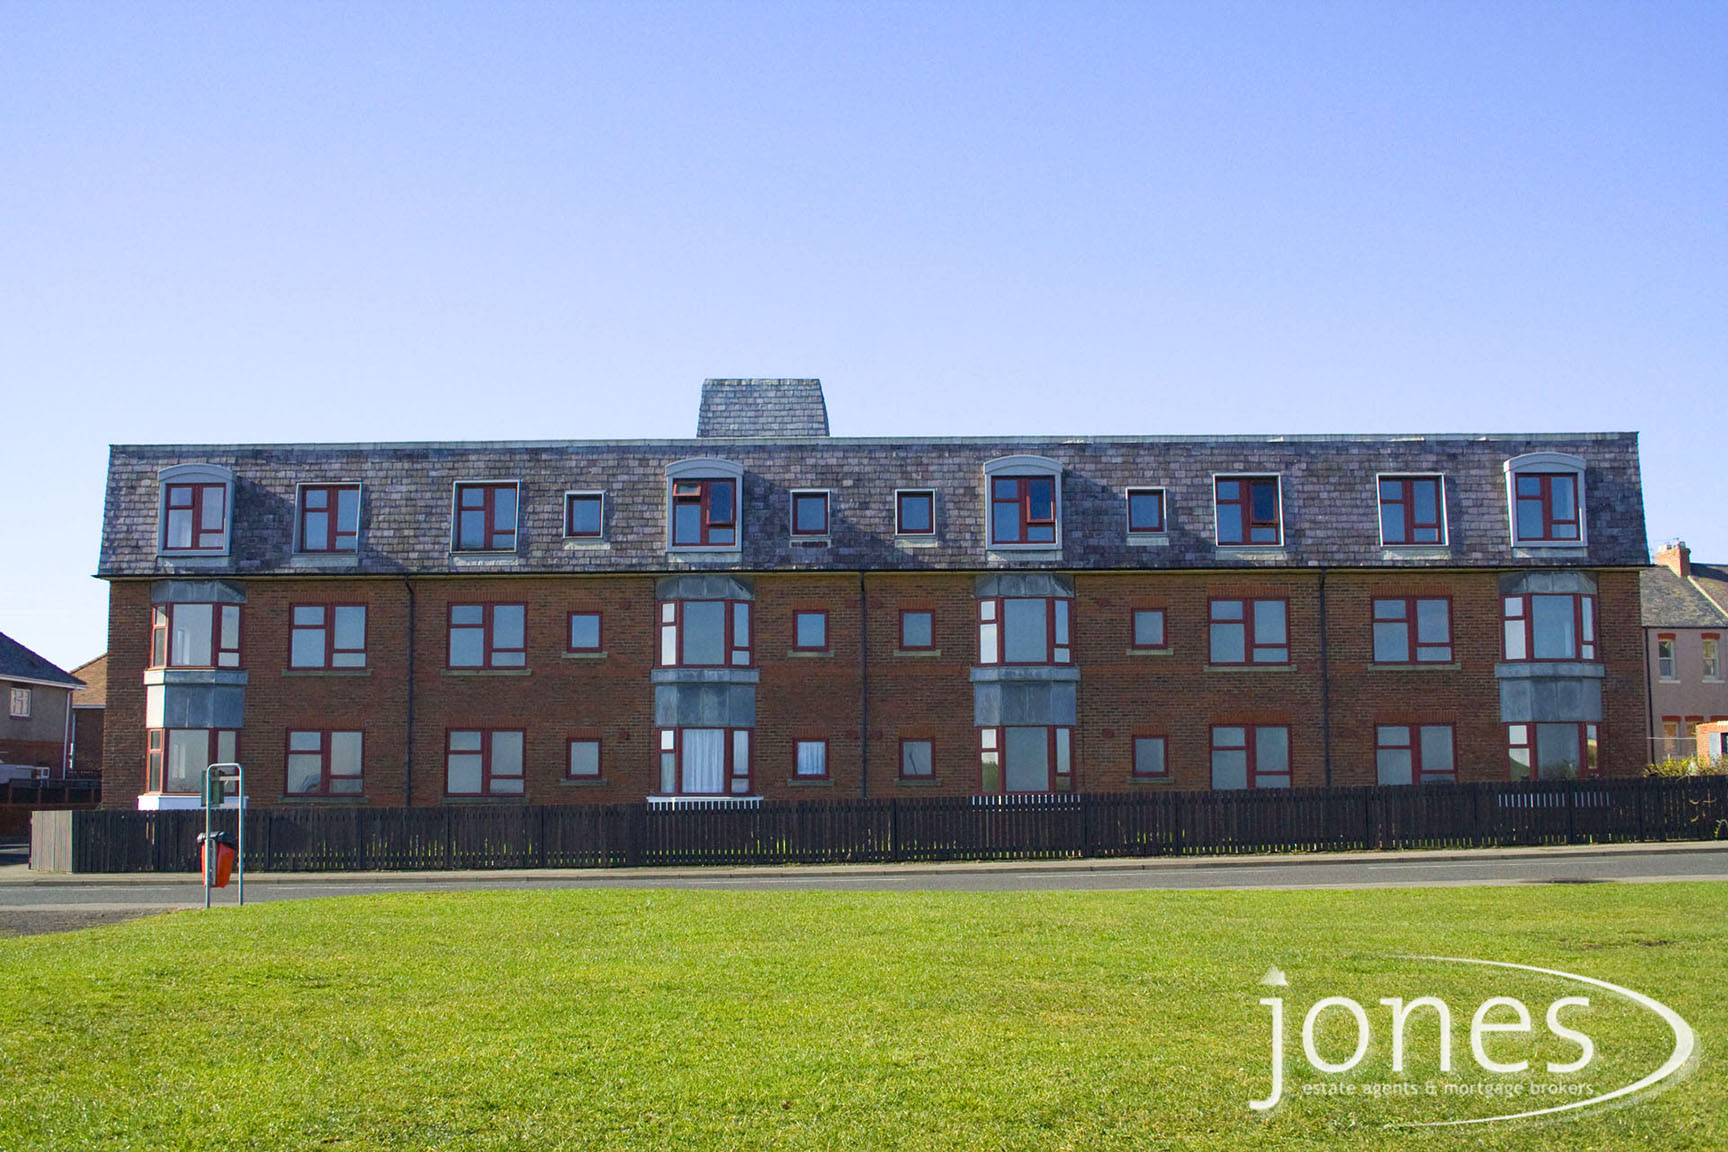 Home for Sale Let - Photo 01 GALLEYSFIELDS COURT, The Headland, Hartlepool, TS24 0NB